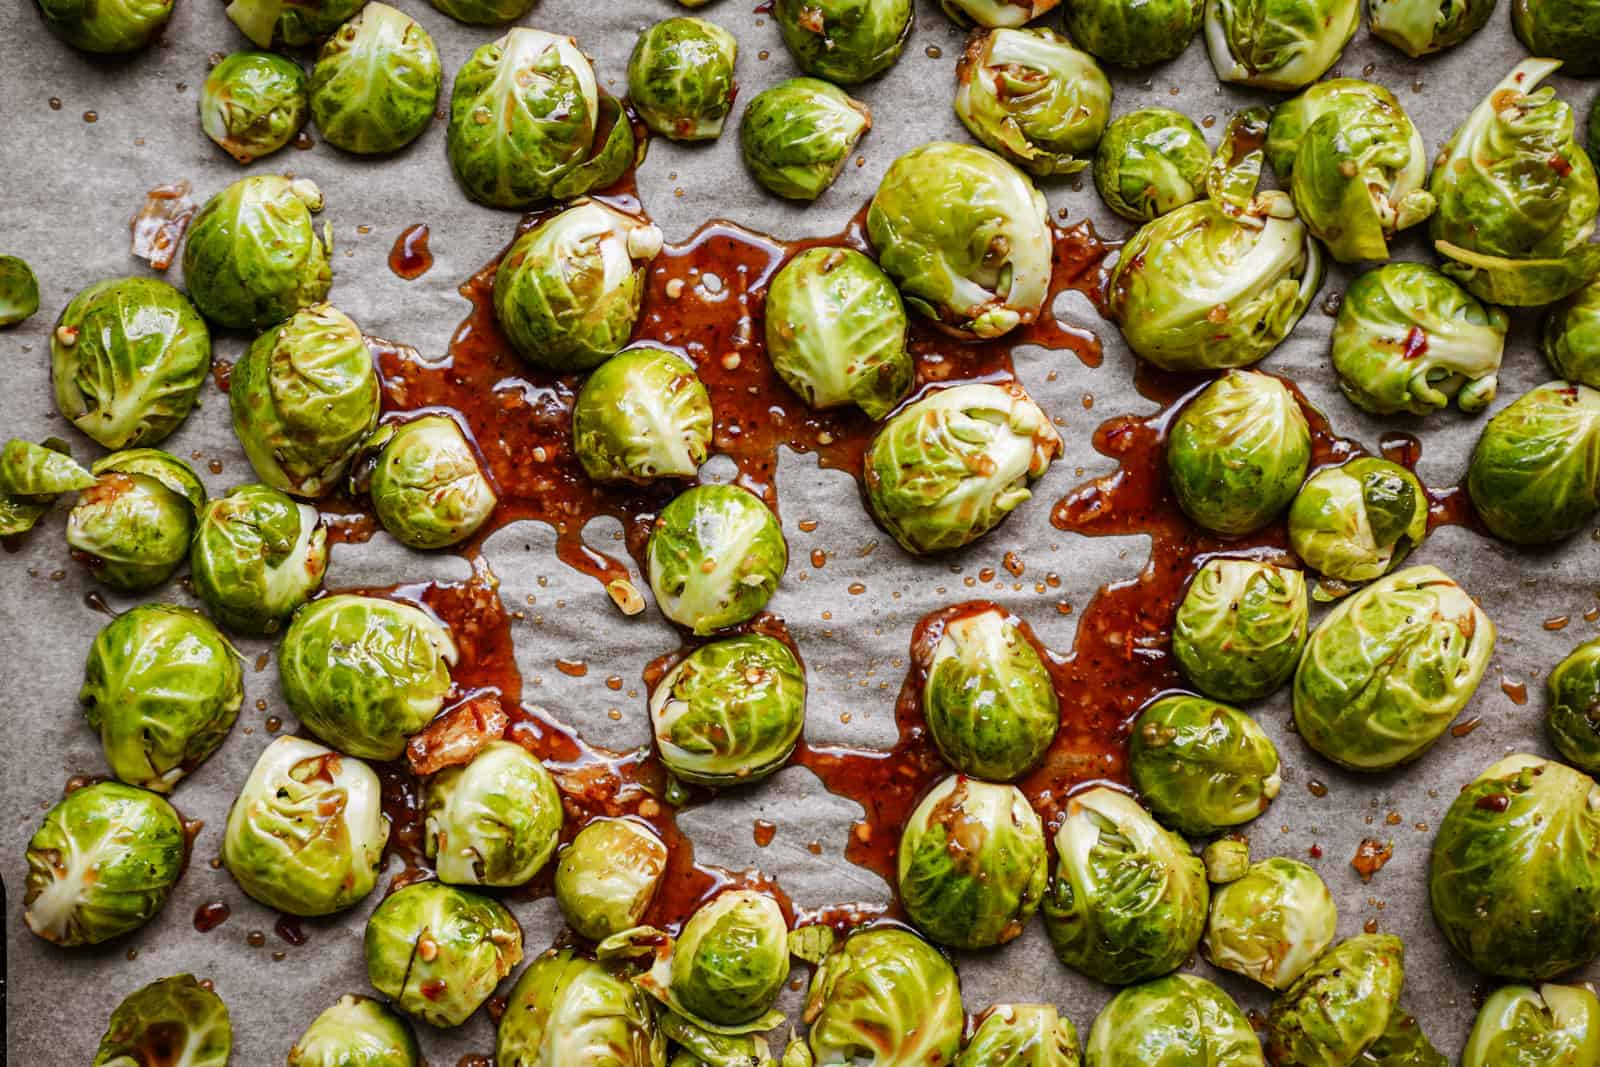 vegan brussel sprouts recipe spread out on a sheet